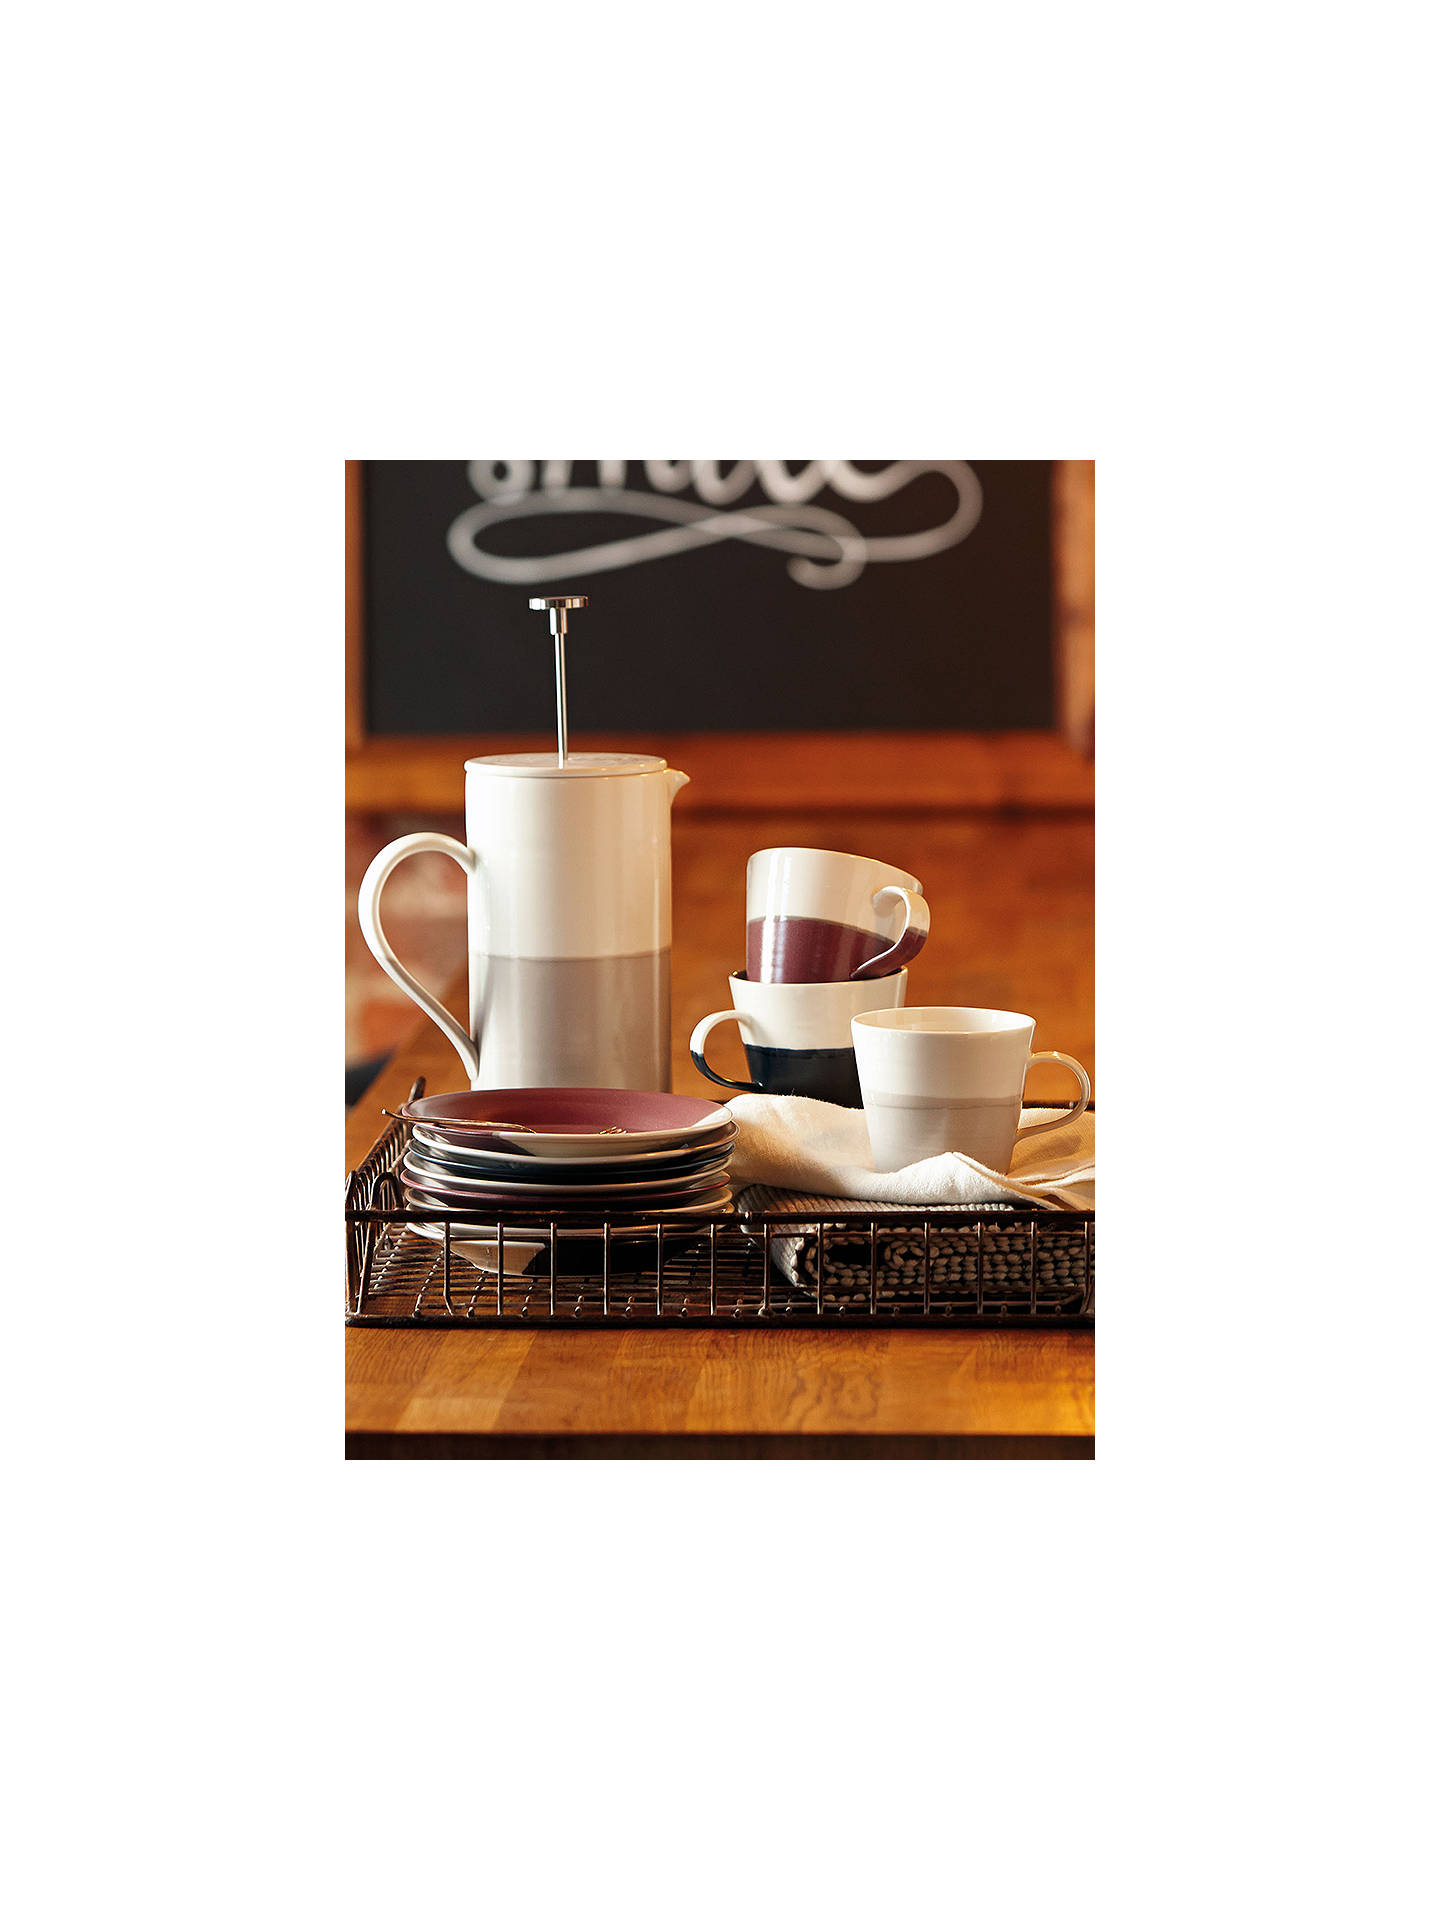 BuyRoyal Doulton Coffee Studio French Press Cafetiere, White/Multi, 1.6L Online at johnlewis.com